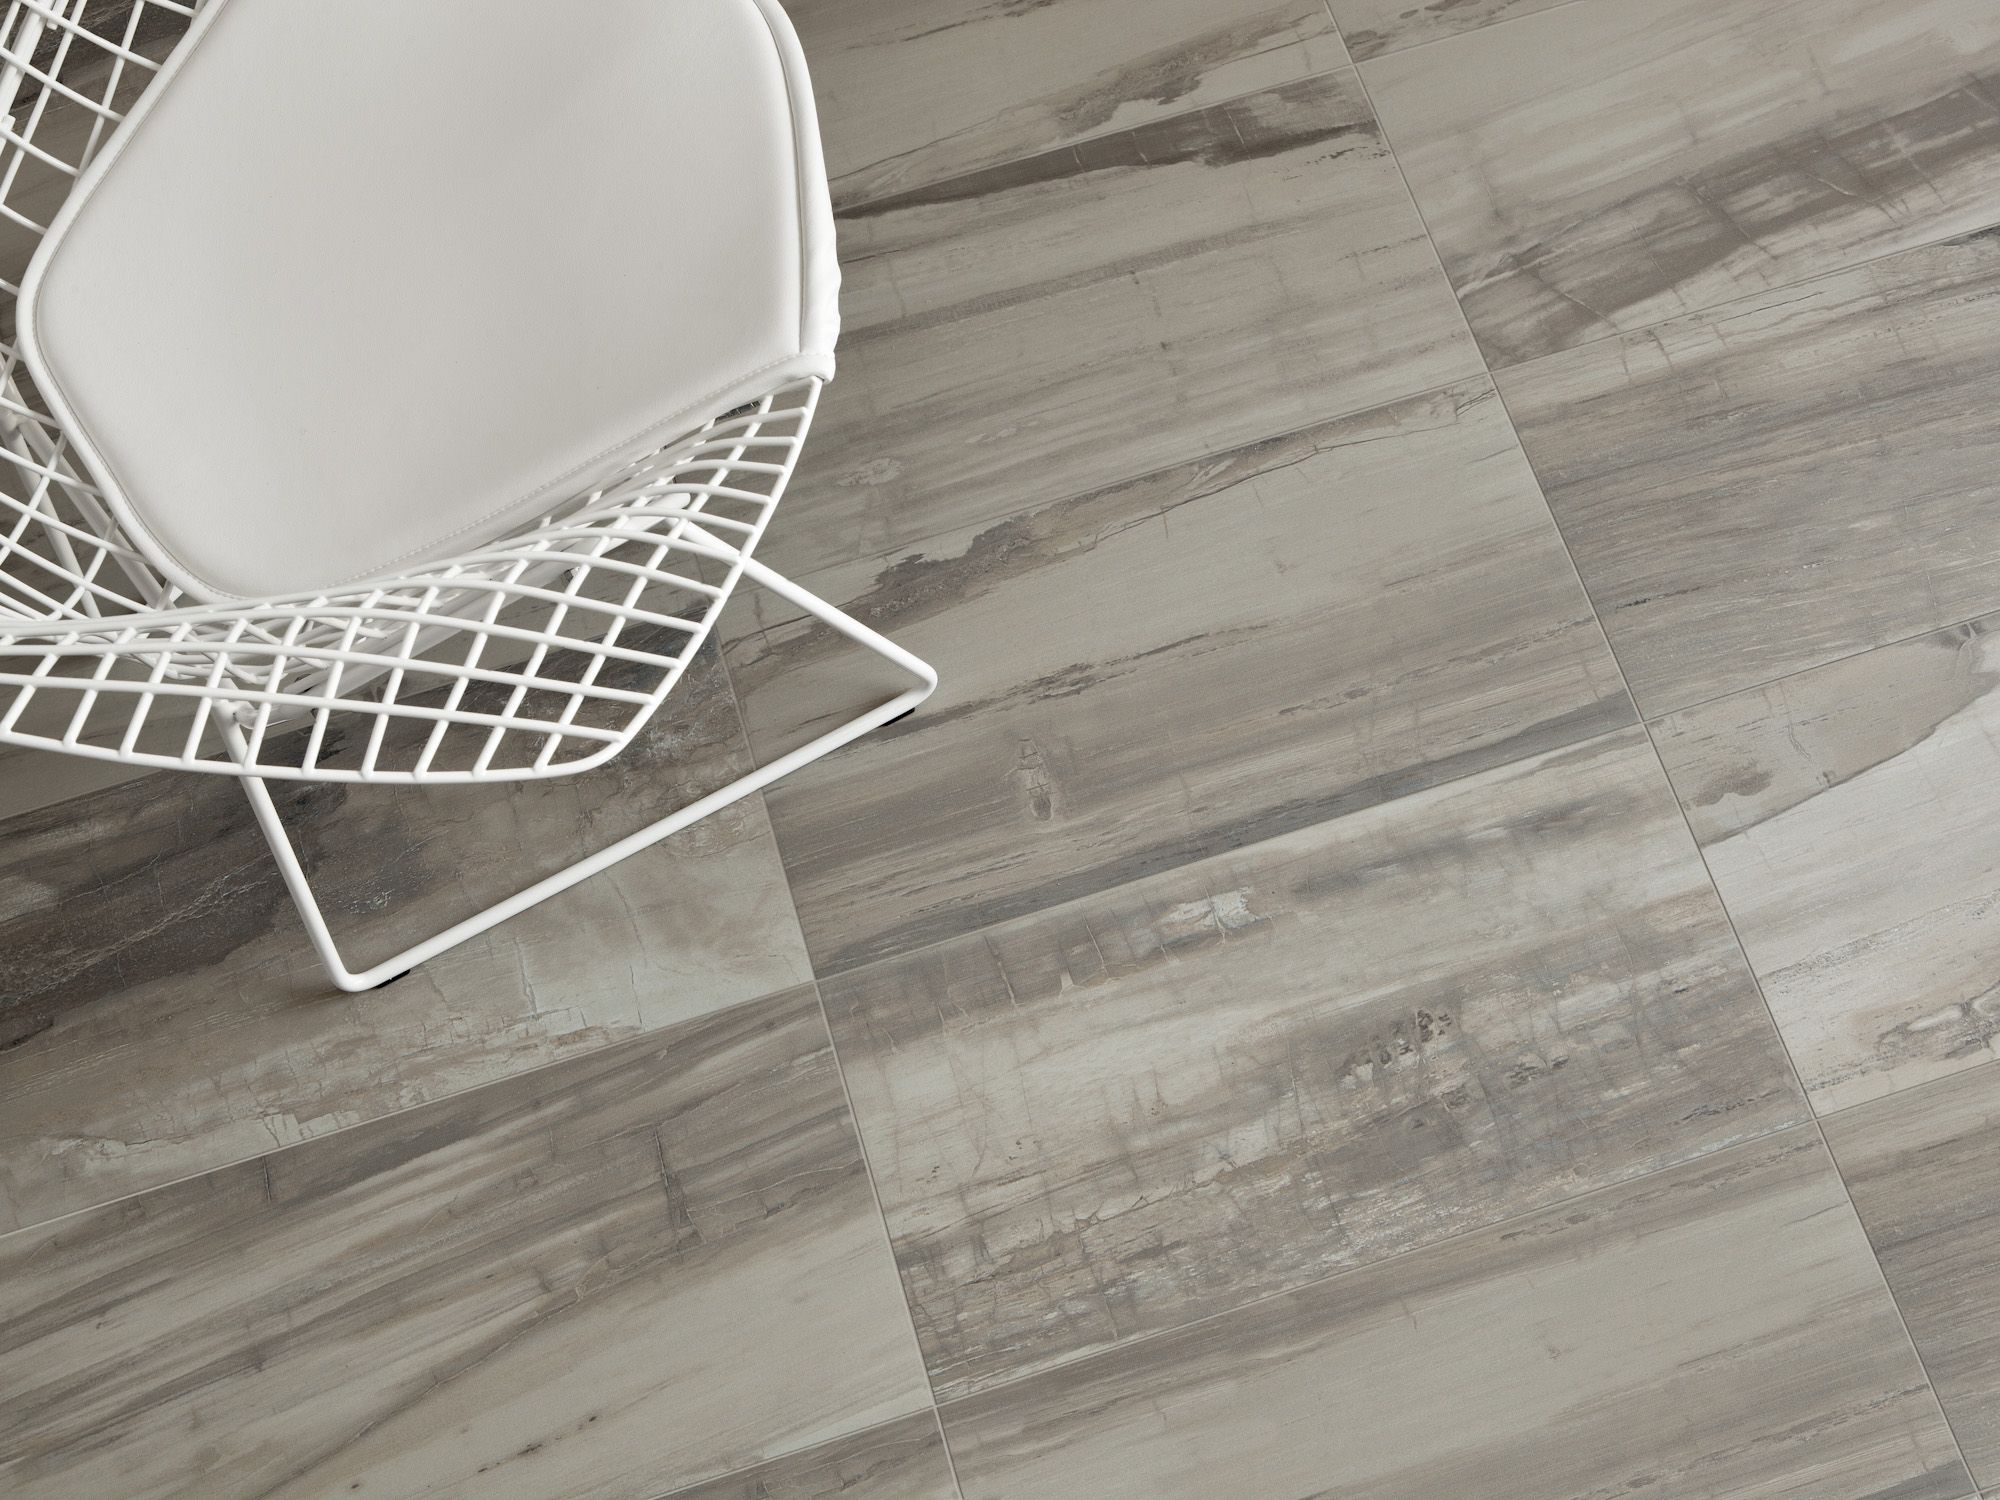 Petrified wood grey 12x24 lappato porcelain wallfloor tile size co dpts ceramic tile selection holds a variety of beautiful durable tile that will last for years to come dailygadgetfo Gallery